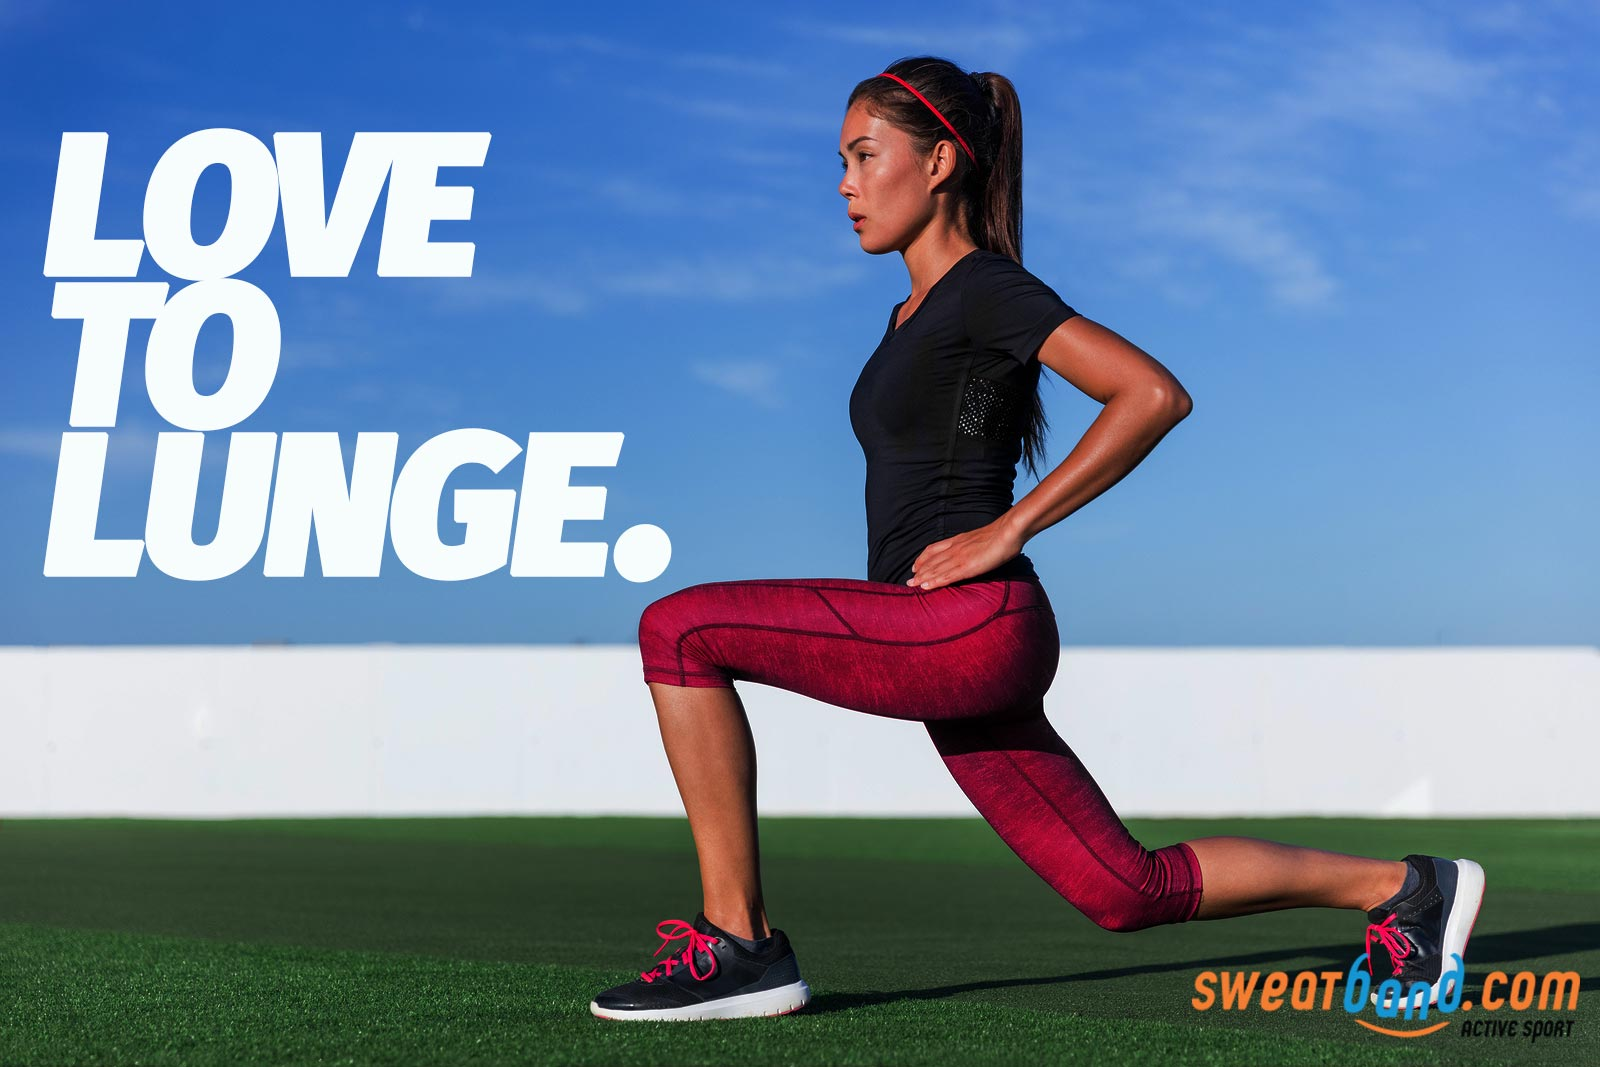 Love to lunge? Your glutes love you lunging too!